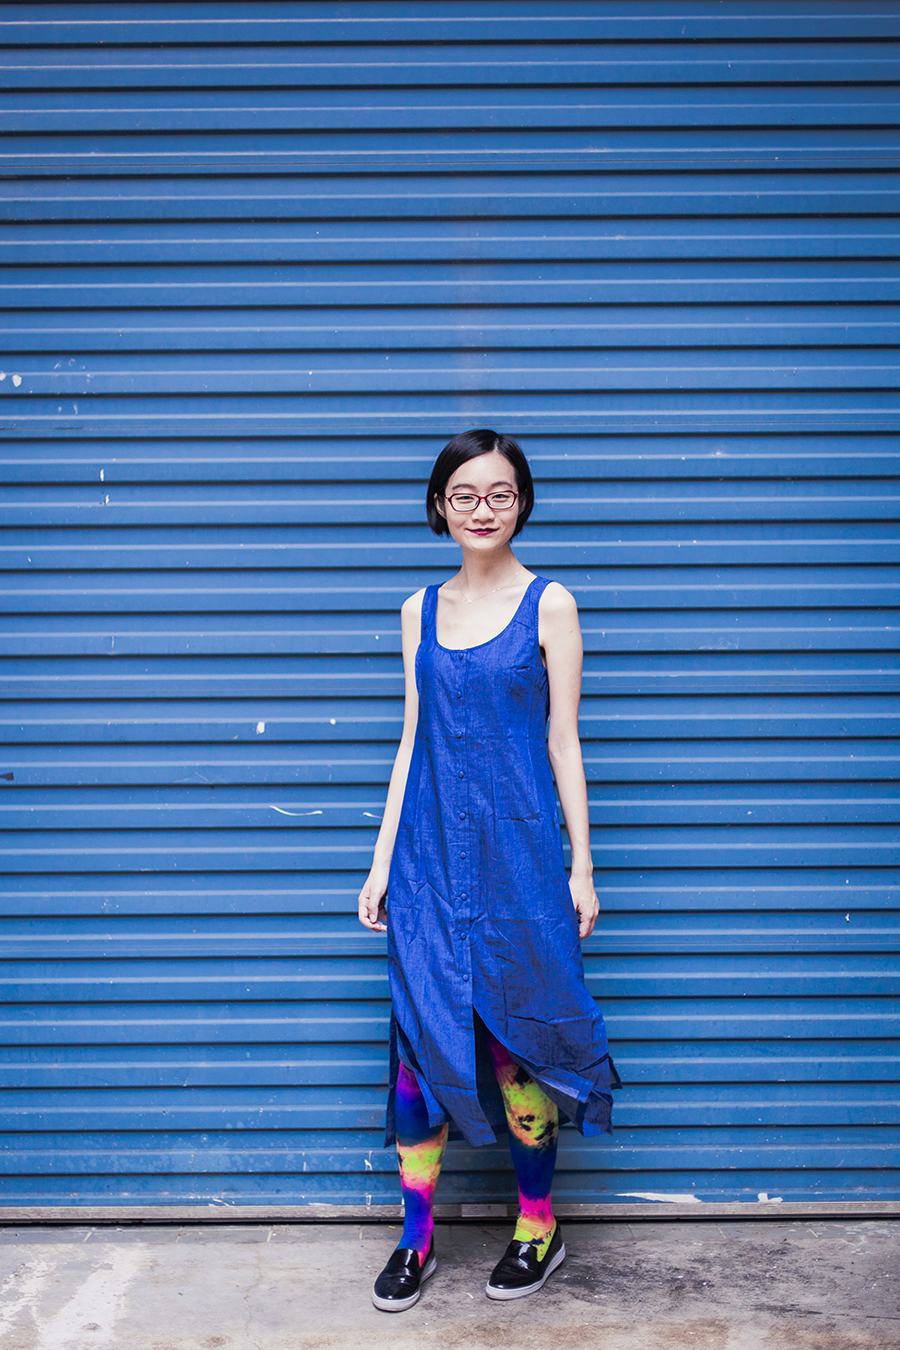 Blue outfit: Zalora Love Button Front Midi Dress, We Love Colors splash color thigh high socks, Zalora black shoes, Firmoo red glasses.